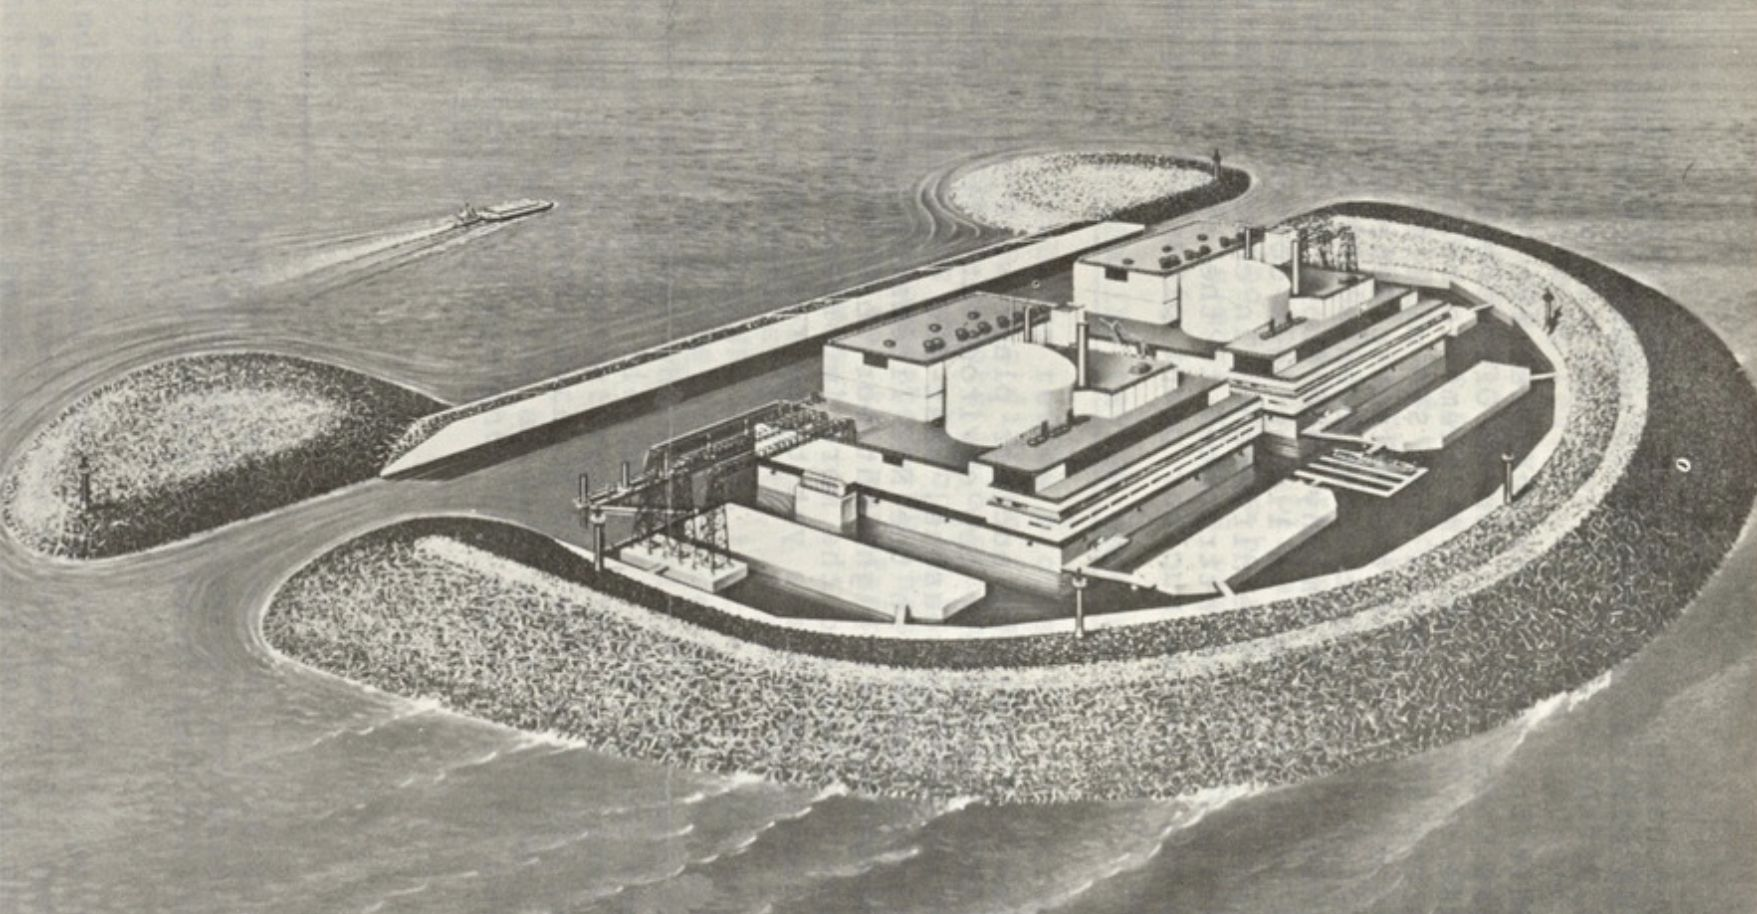 Floating Nuclear Power Plants Sounded Screwy in 1969. Today? Not So Much